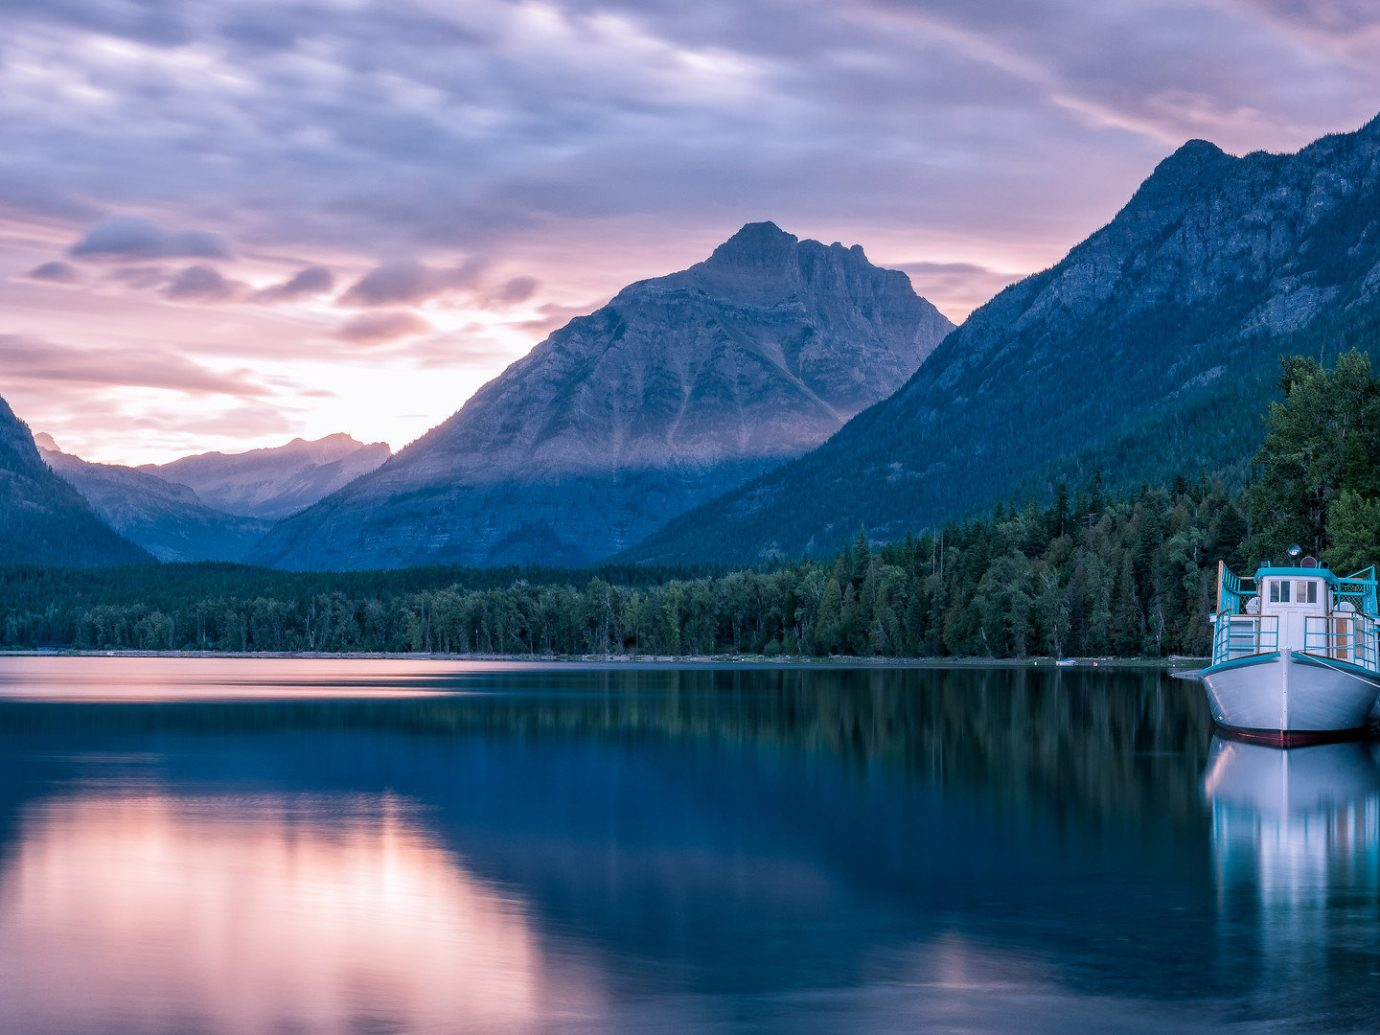 Hotels Lakes + Rivers National Parks Outdoors + Adventure Trip Ideas mountain water sky outdoor mountainous landforms Nature Boat reflection Lake landform wilderness mountain range body of water fjord cloud loch morning canyon landscape glacial landform alps reservoir dusk surrounded distance